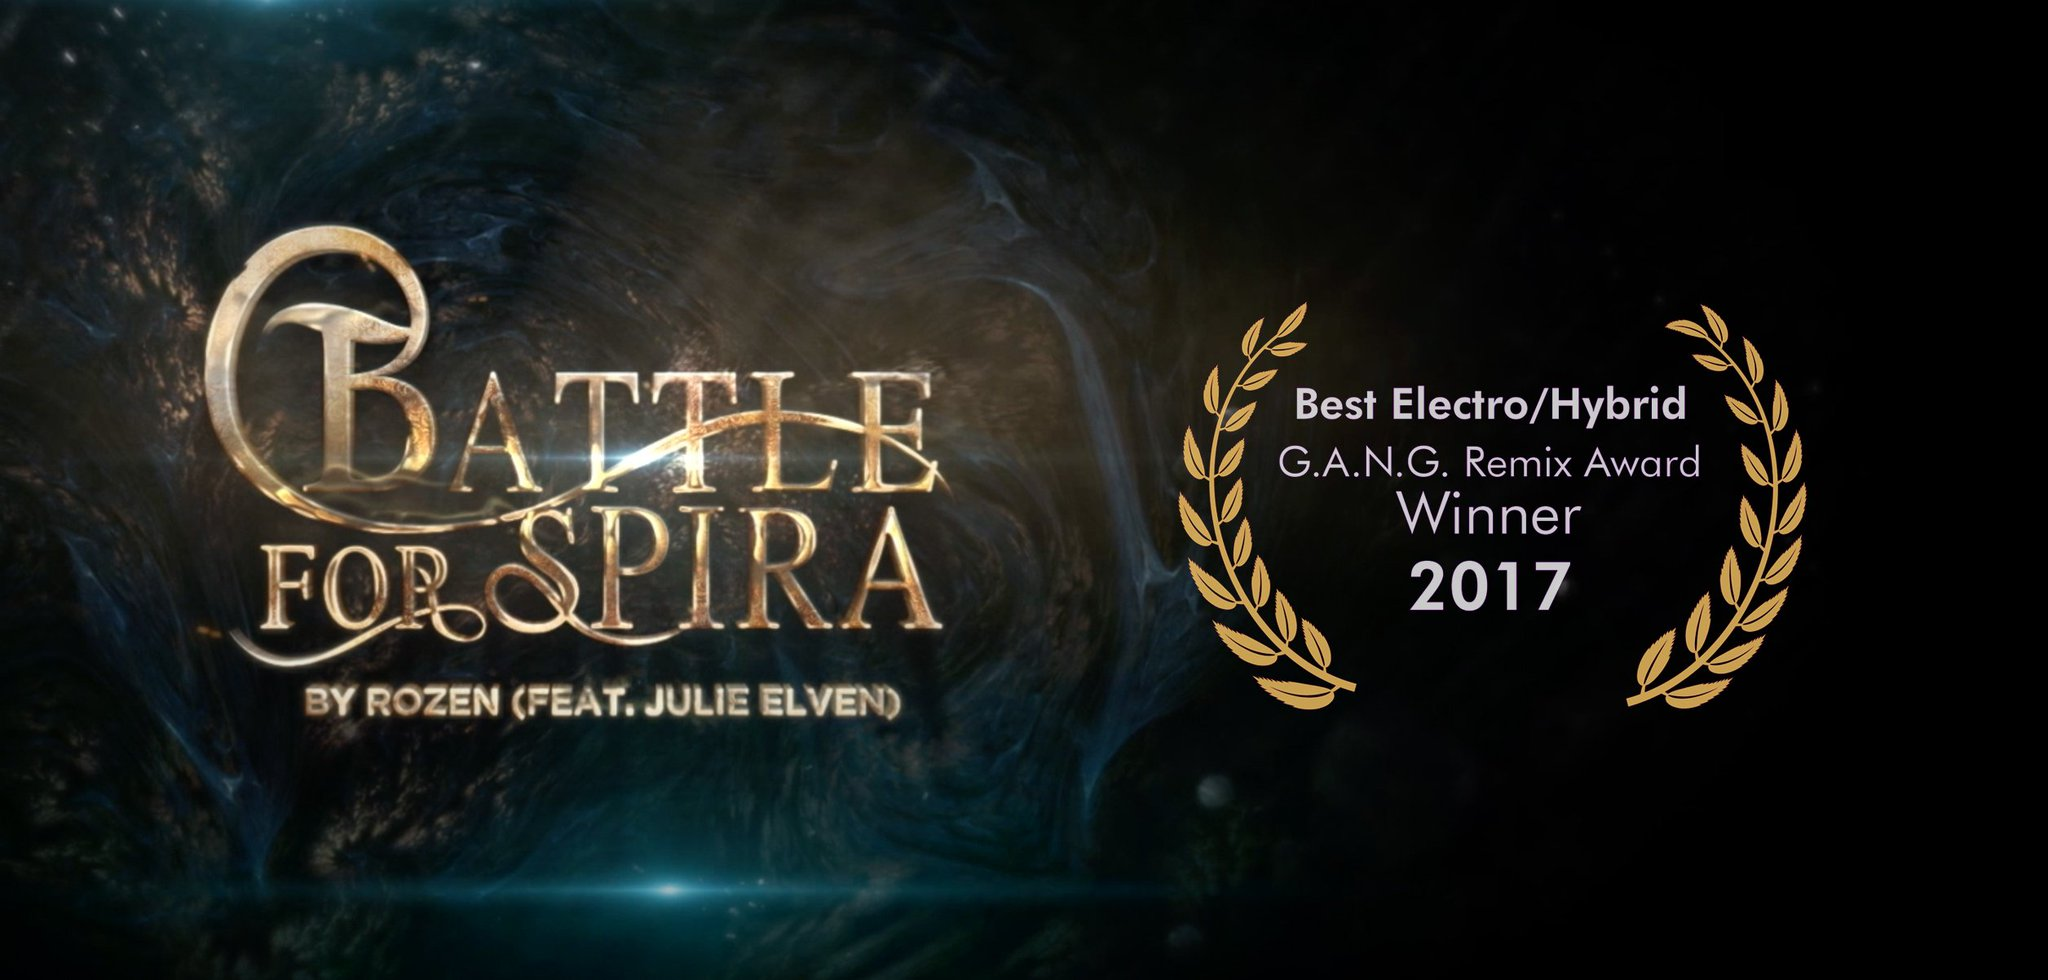 battle for spira rozen julie elven g.a.n.g. remix award